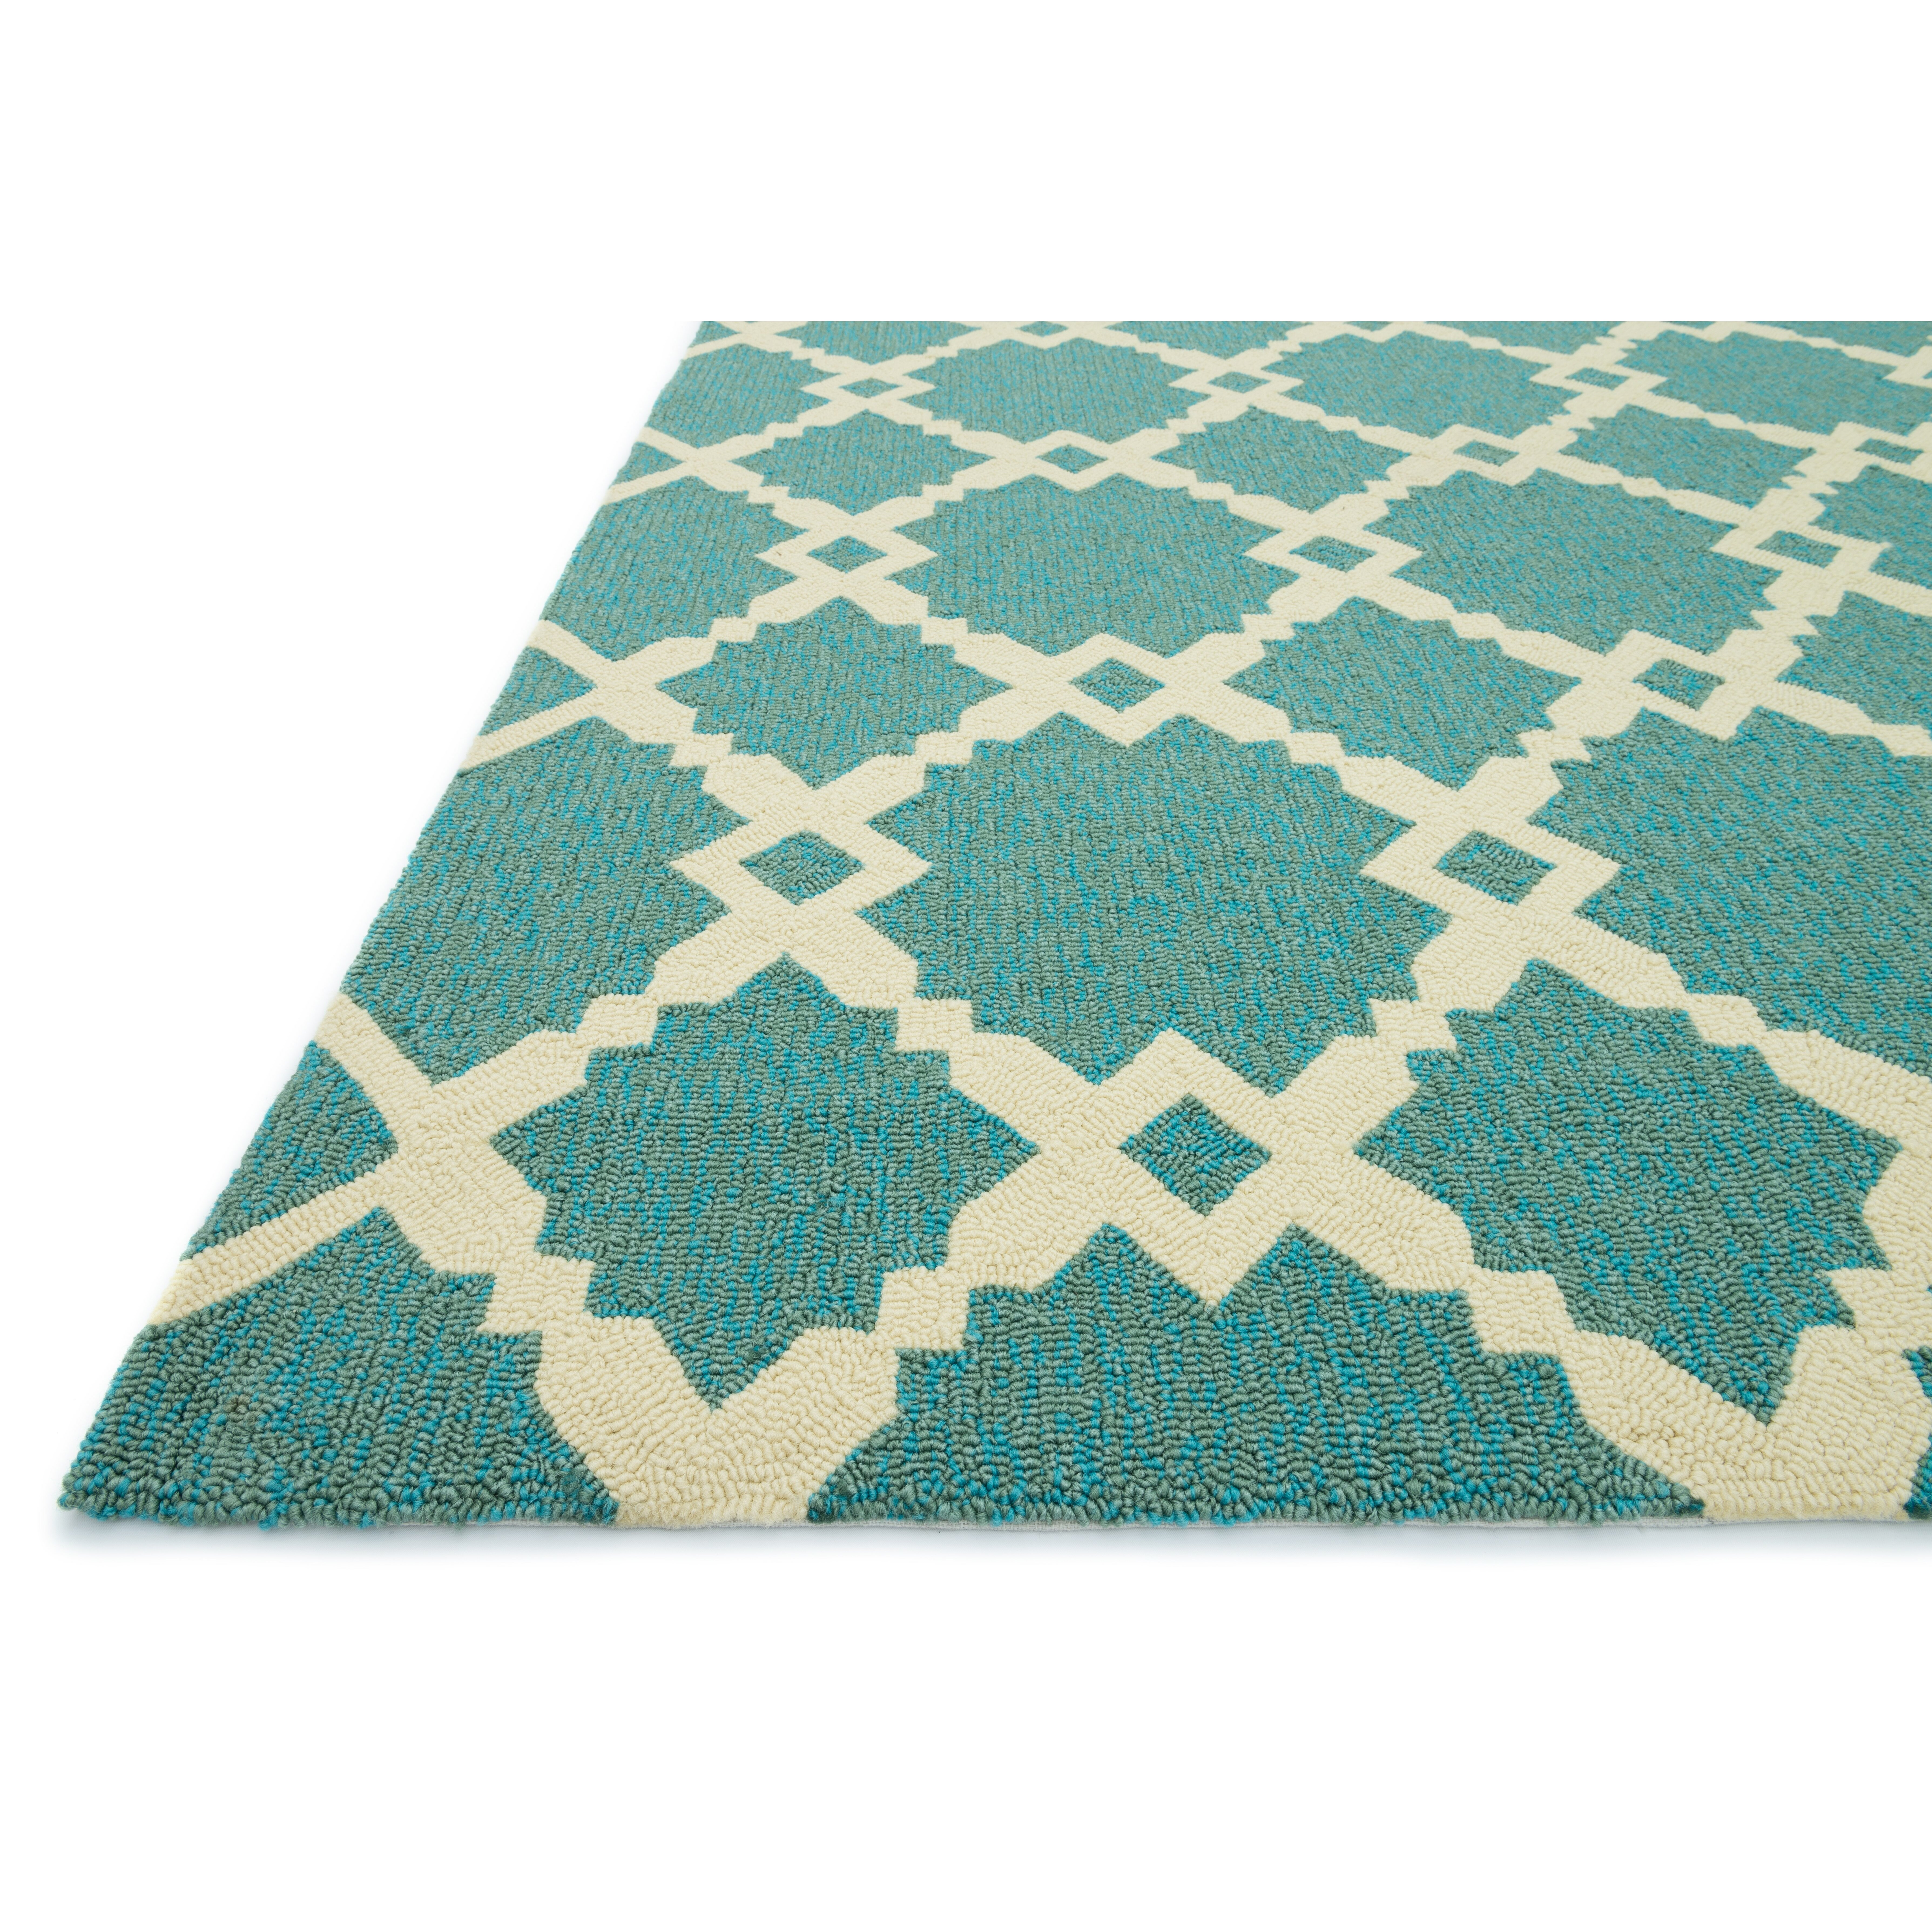 Coral And Turquoise Outdoor Rug: Loloi Rugs Ventura Geometric Turquoise/Ivory Indoor